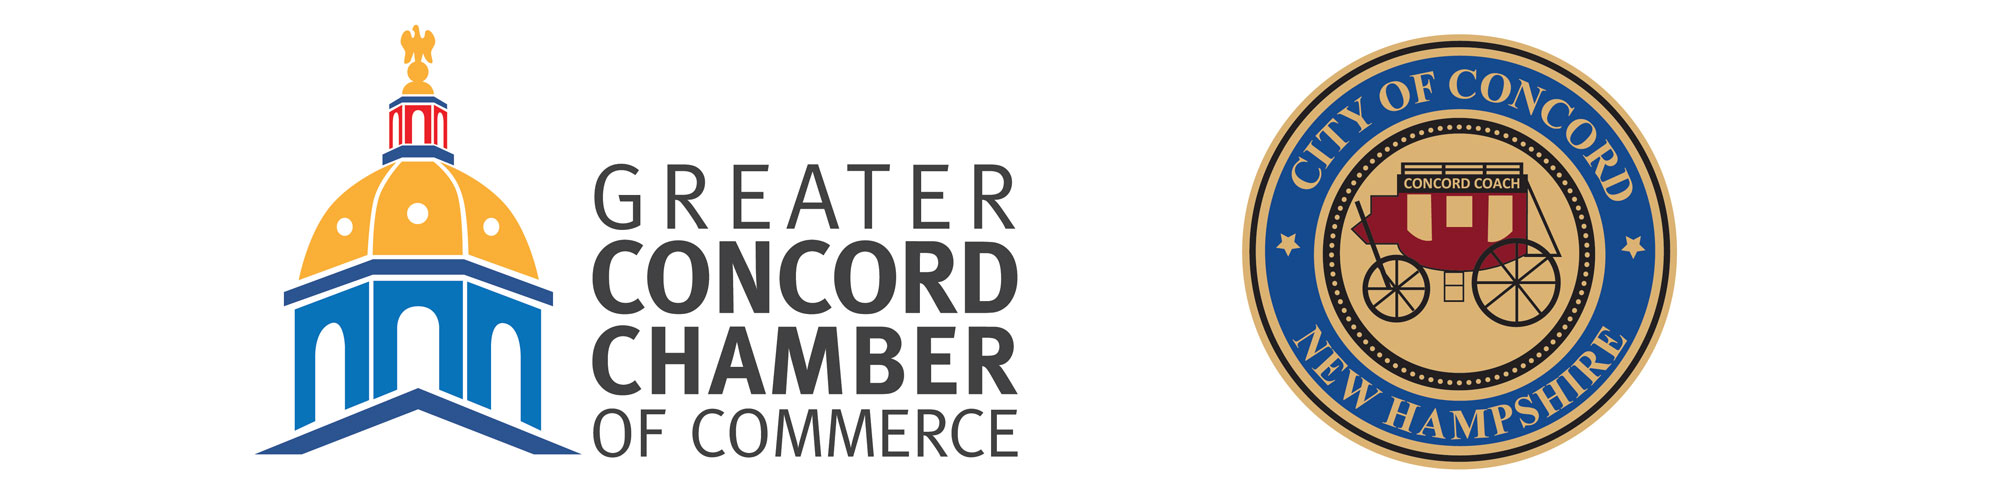 Logos for the Greater Concord Chamber of Commerce and City of Concord, New Hampshire